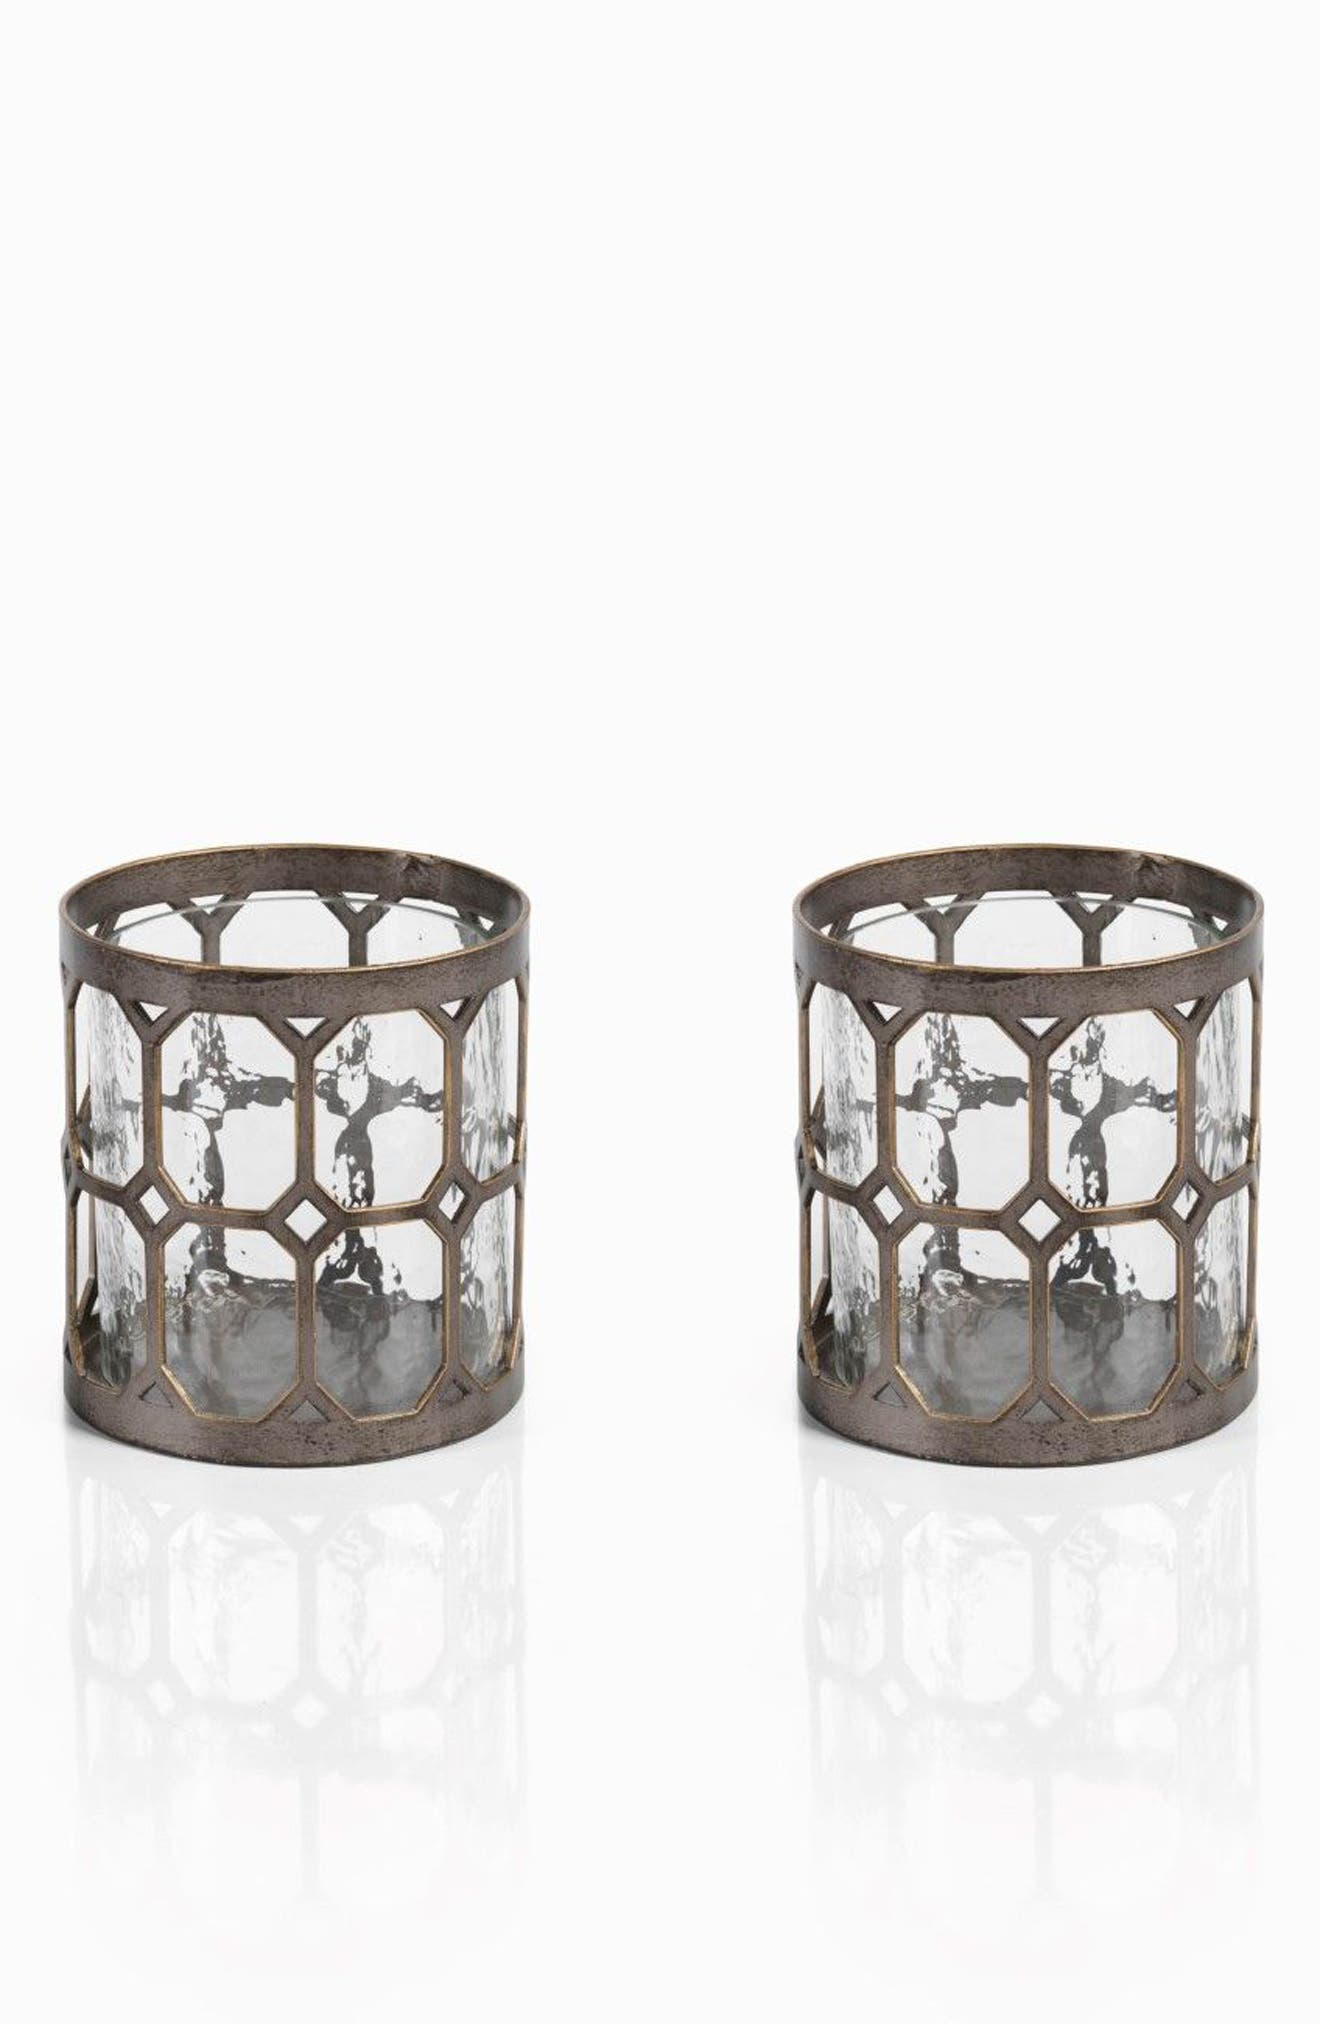 Loire Set of 2 Hurricane Candle Holders,                             Main thumbnail 1, color,                             Metallic/ Silver/ Grey